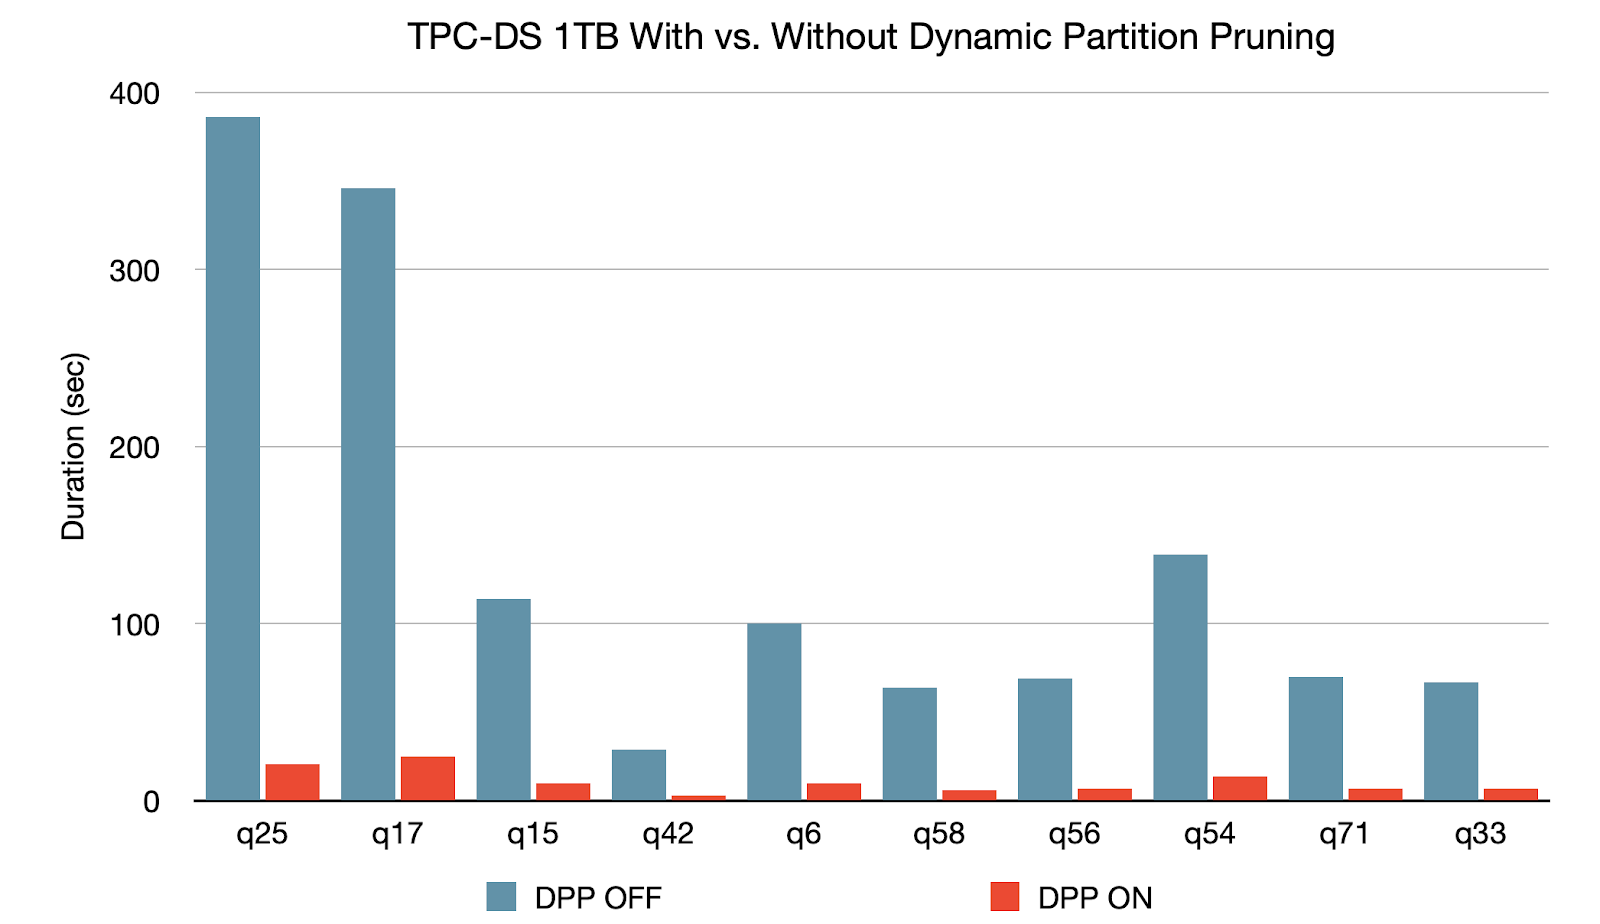 TPC-DS 1TB Parquet With vs. Without Dynamic Partition Pruning